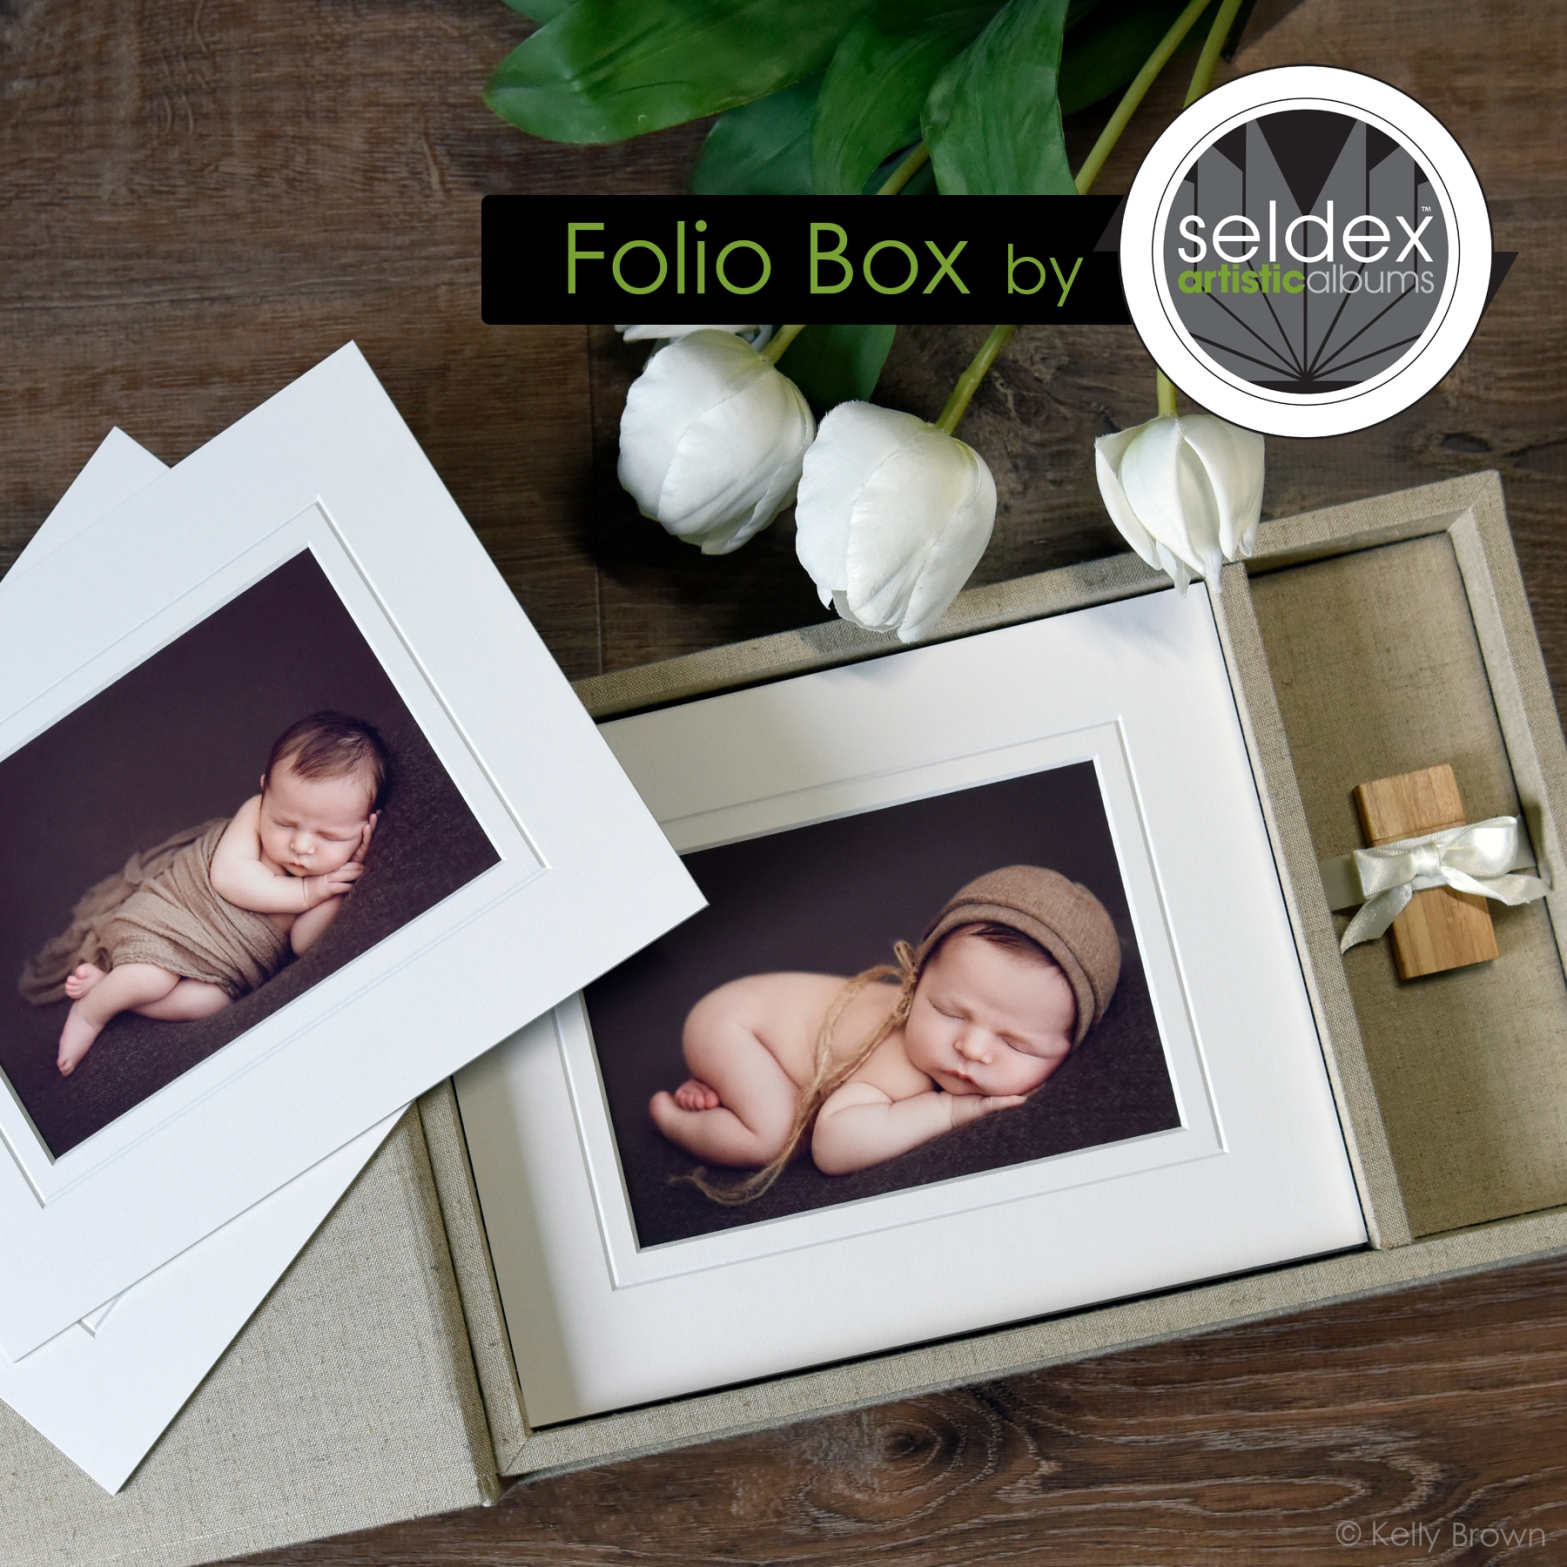 Best Folio Box for IPS or Reveal Wall style of sales. Seldex created the original Portfolio Box that started it all, and now things just got even better. Available in North America through Finao.